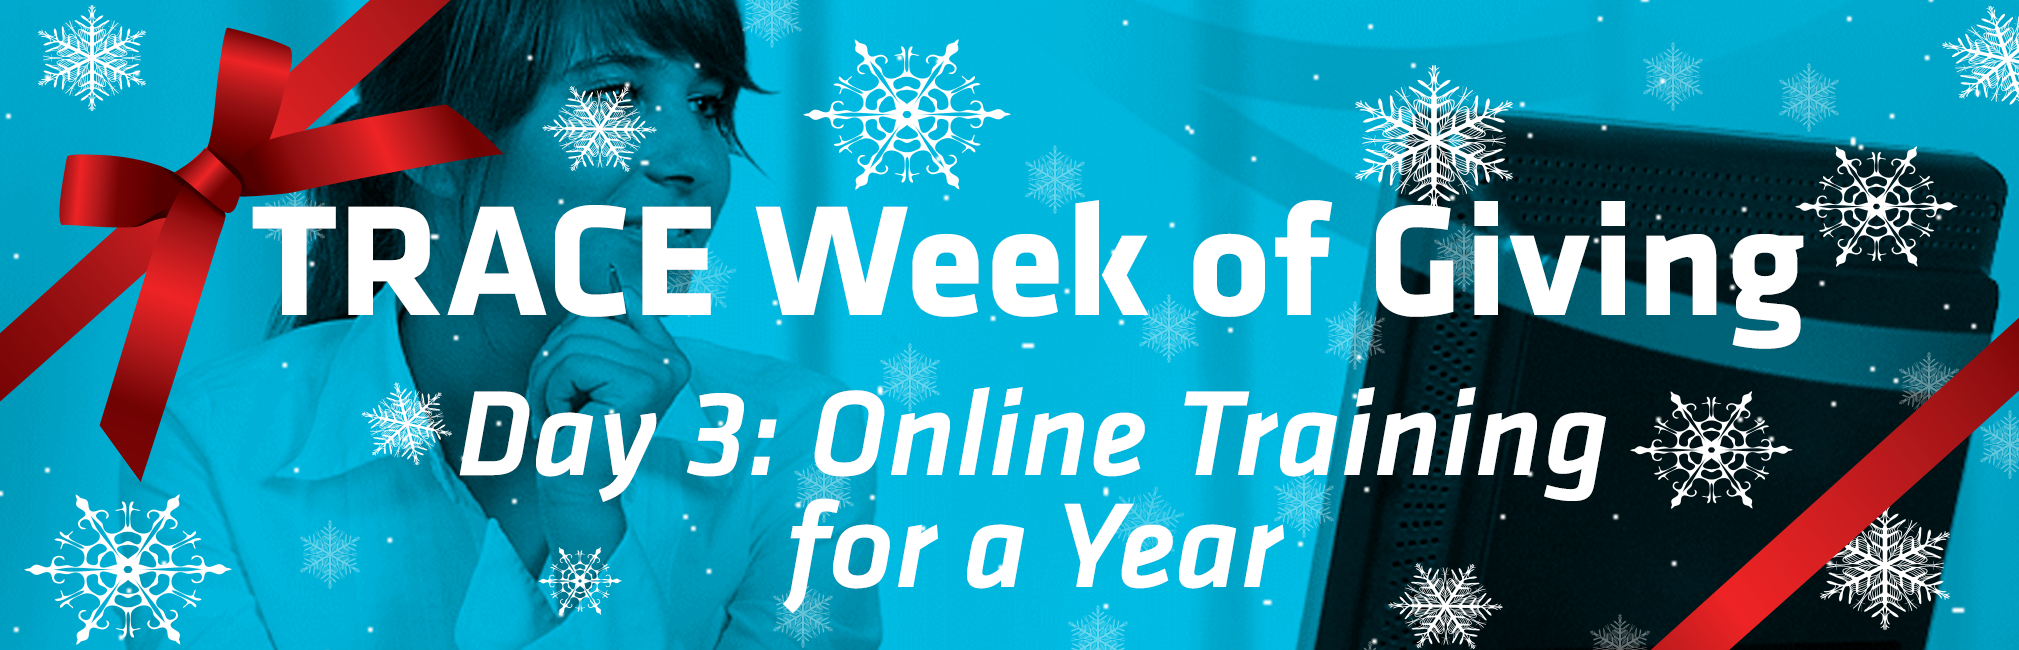 TRACE-week-of-giving-email-banner-day3